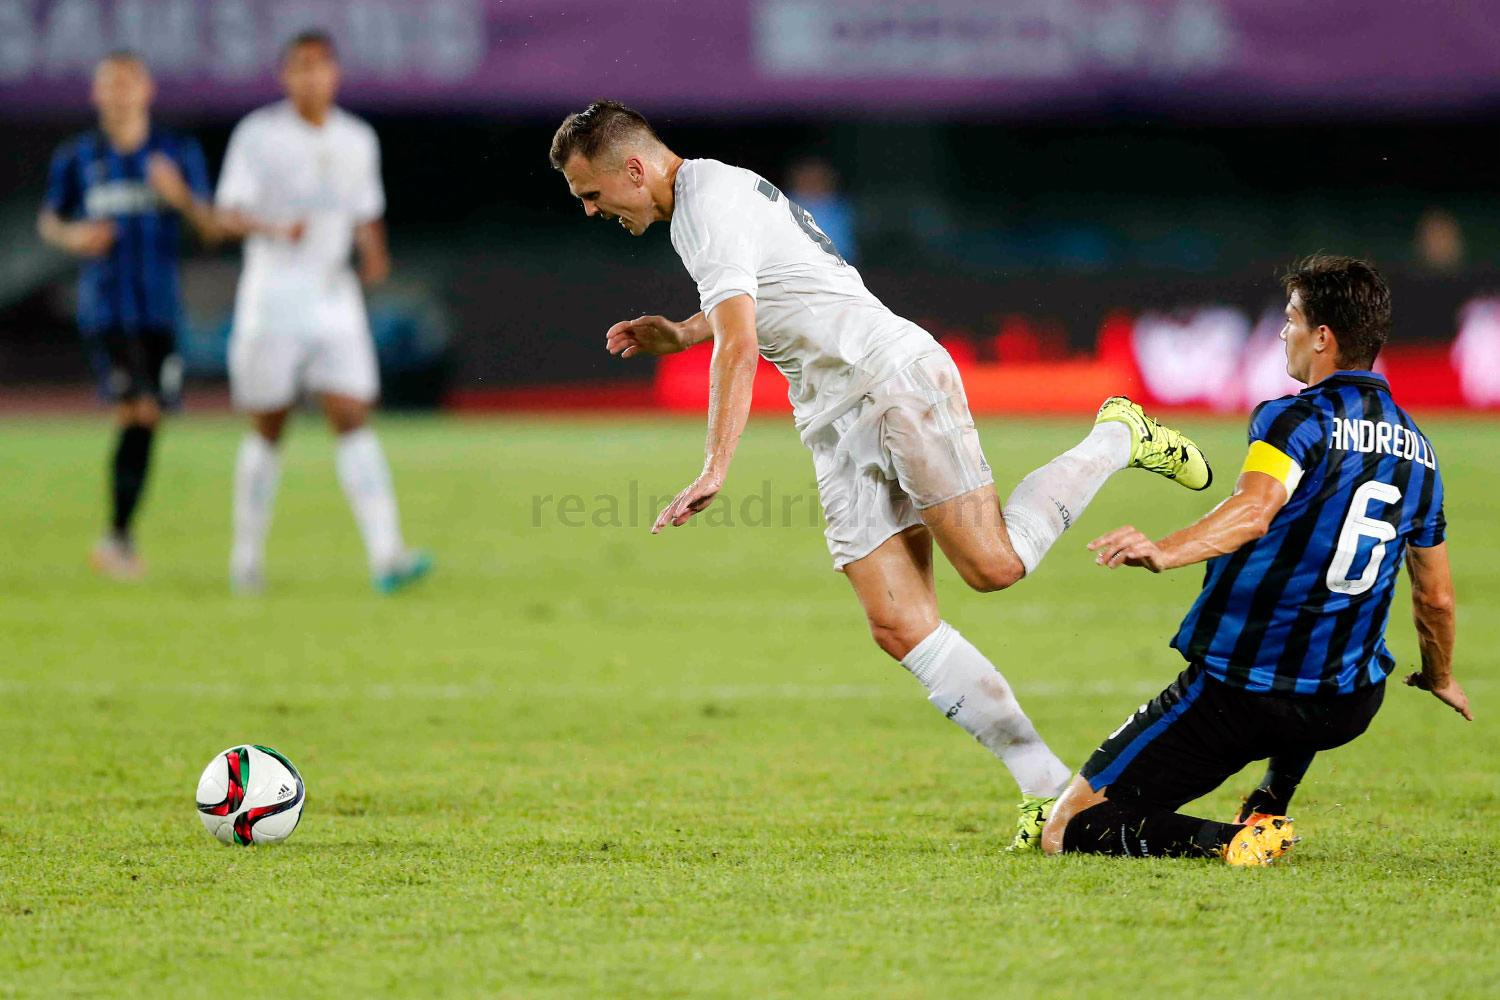 Real Madrid - Inter de Milán - Real Madrid - 27-07-2015